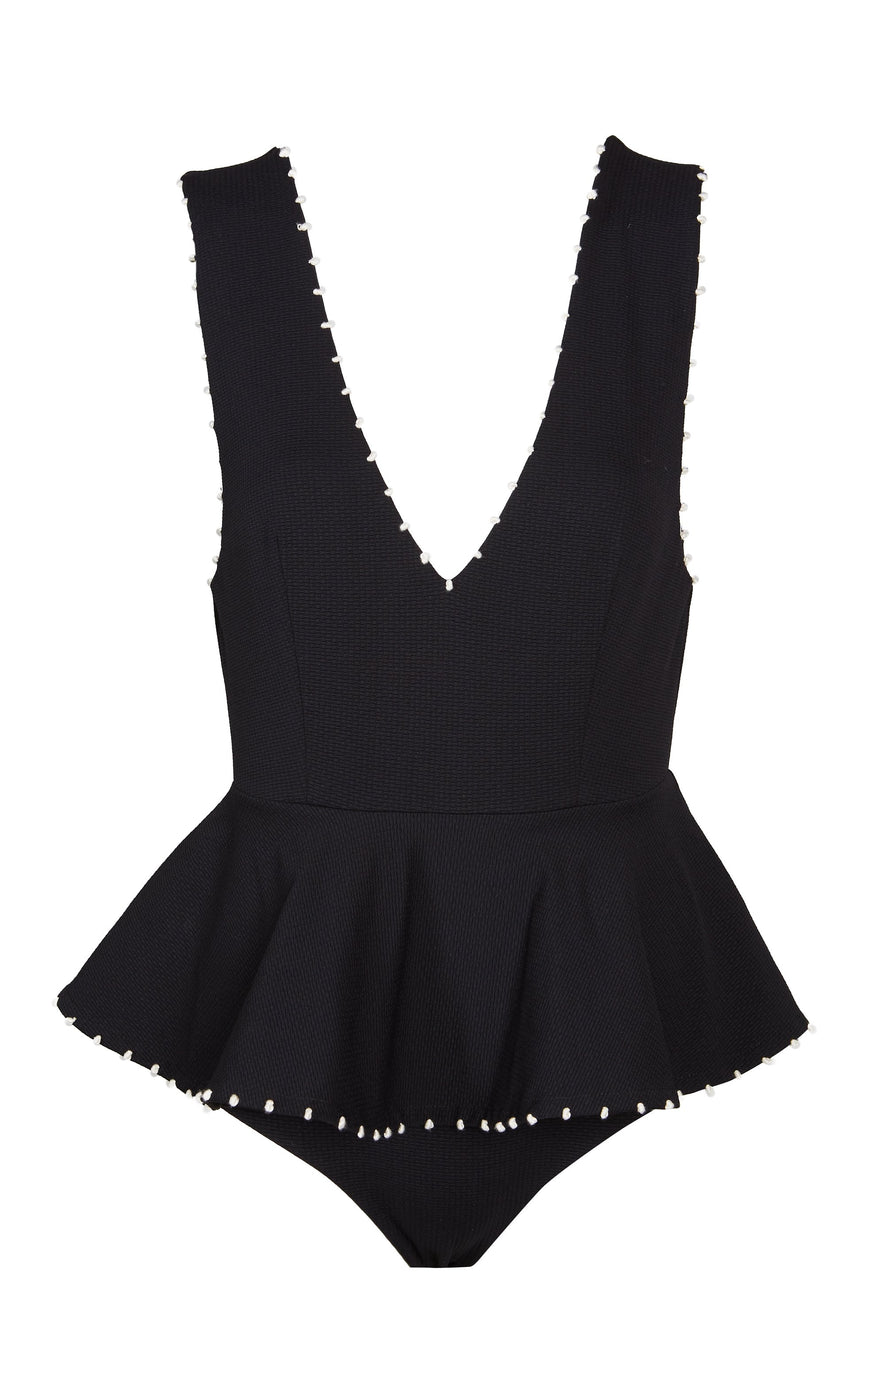 French Gramercy Maillot in Black with Coconut Knots